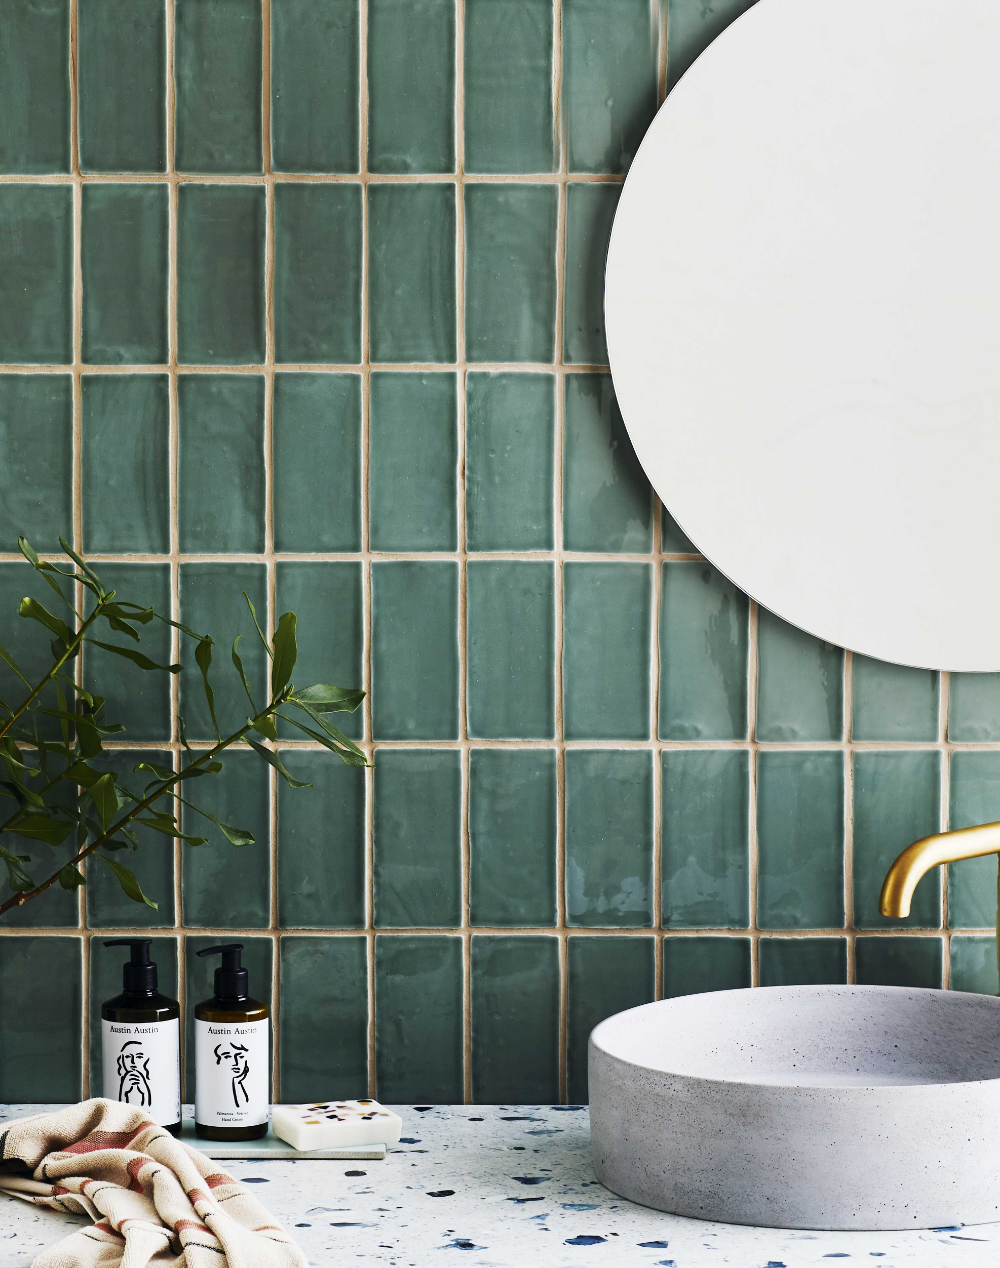 Bathroom Tiles - Shop Now, Pay Later with Afterpay & ZipPay - Tile